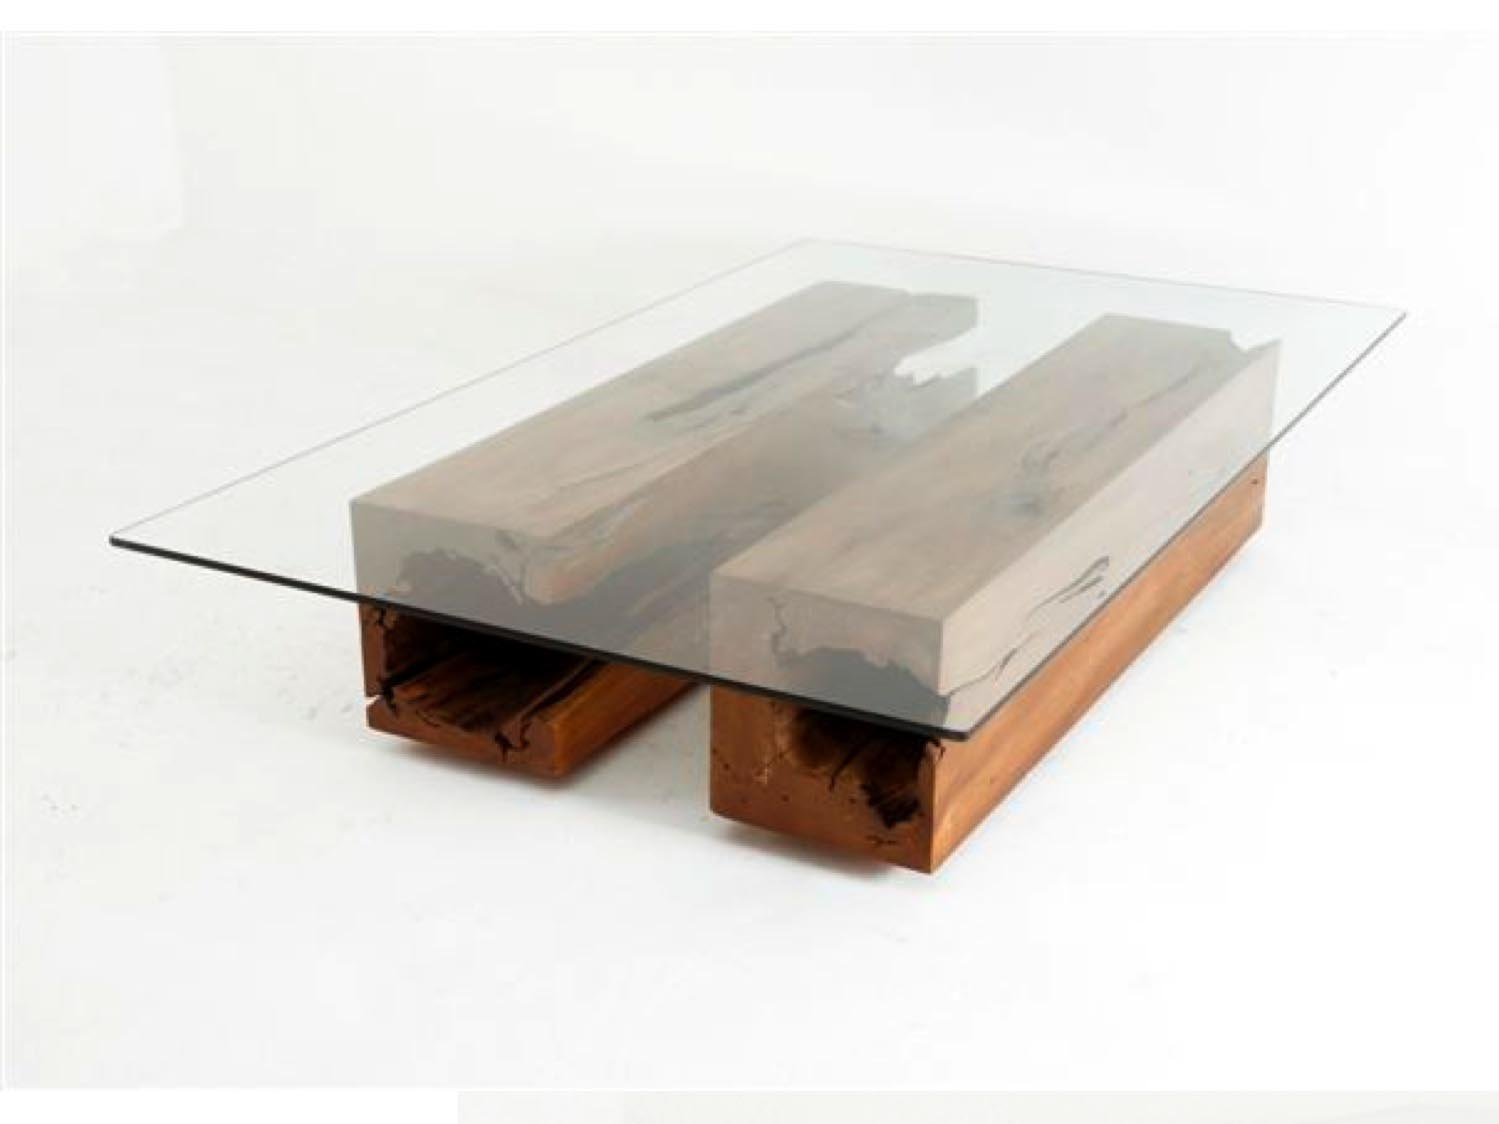 Unique Coffee Table Unique Coffee Table Legs  Coffee Table Design Ideas